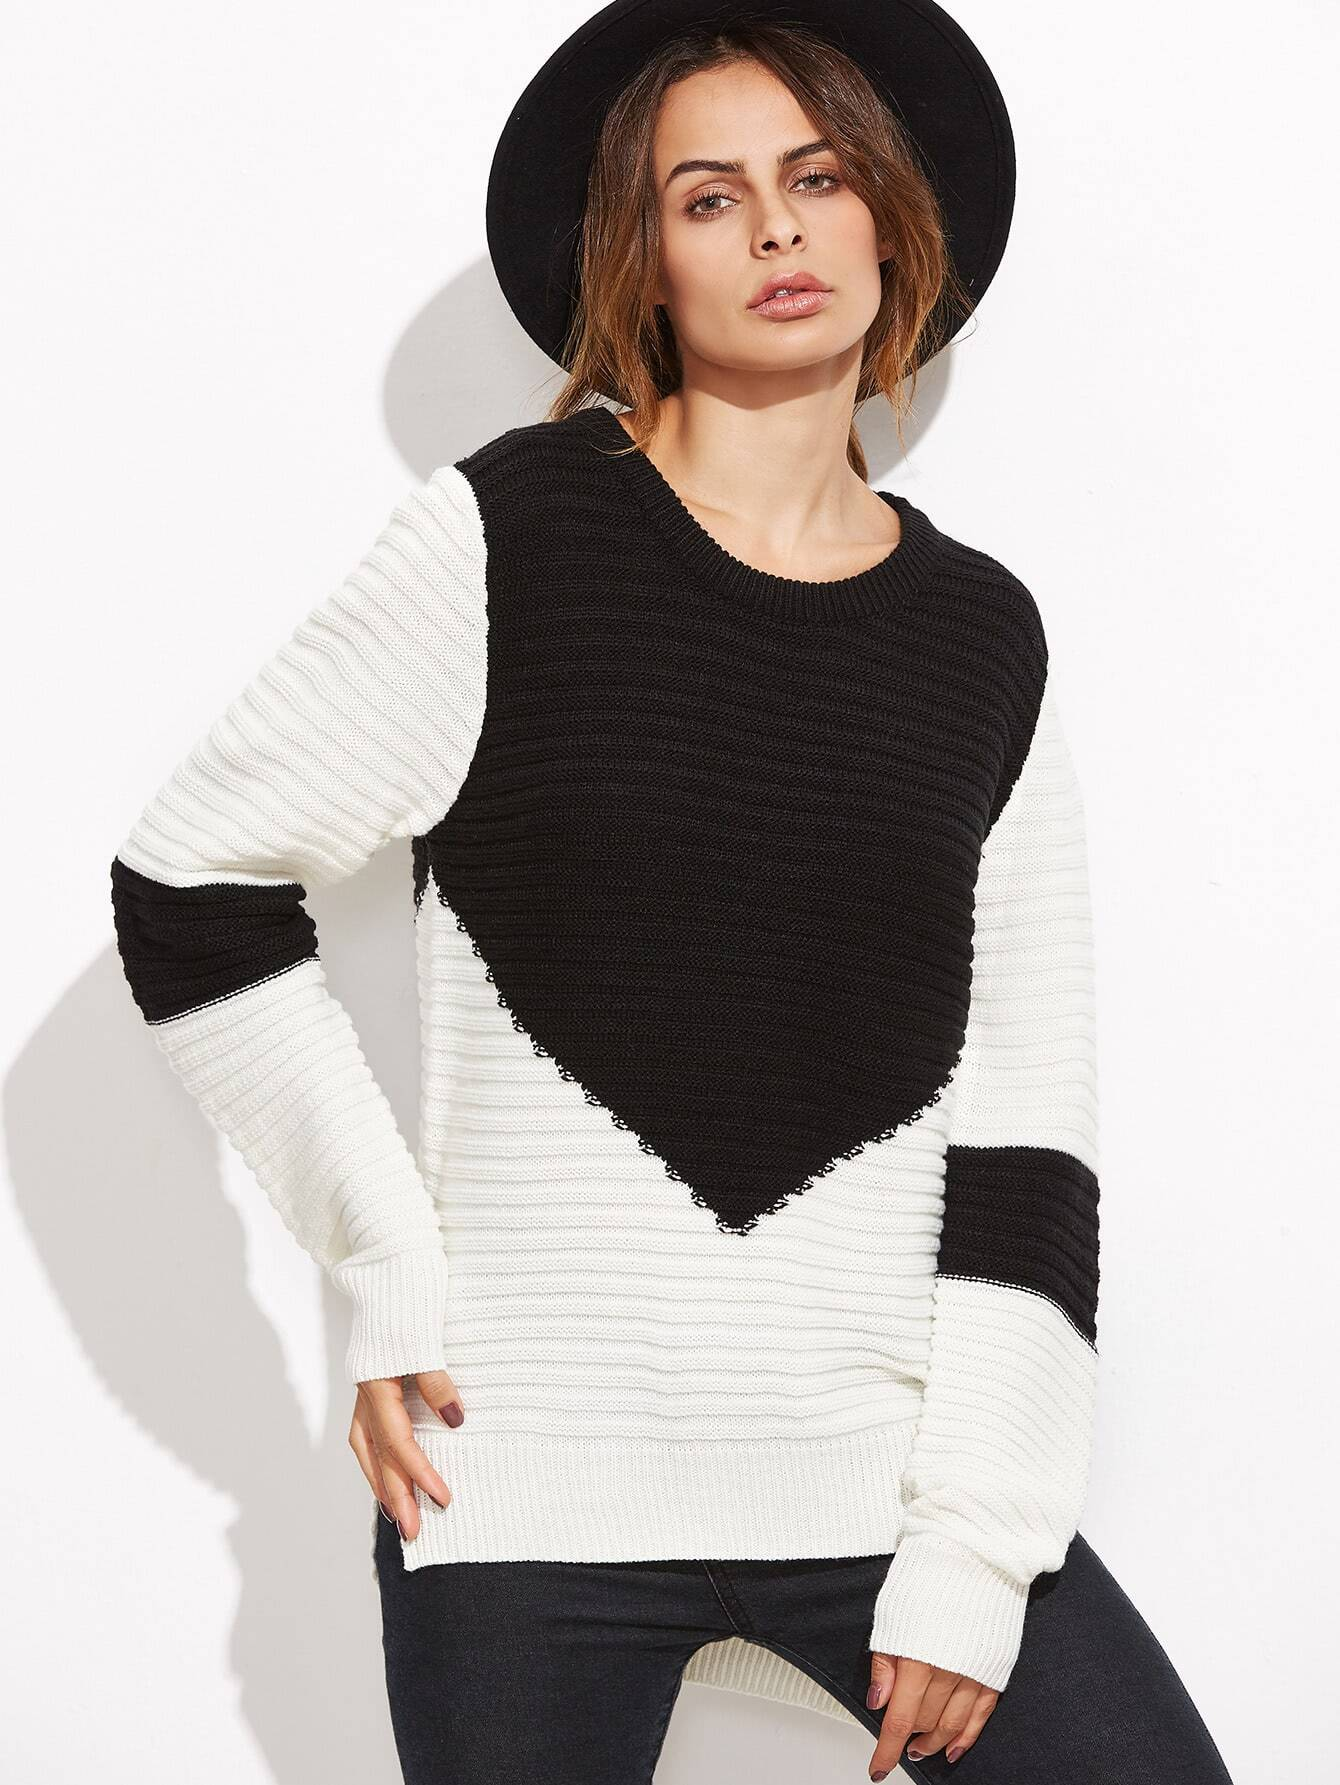 Contrast Ribbed Knit Slit High Low Sweater sweater161007465